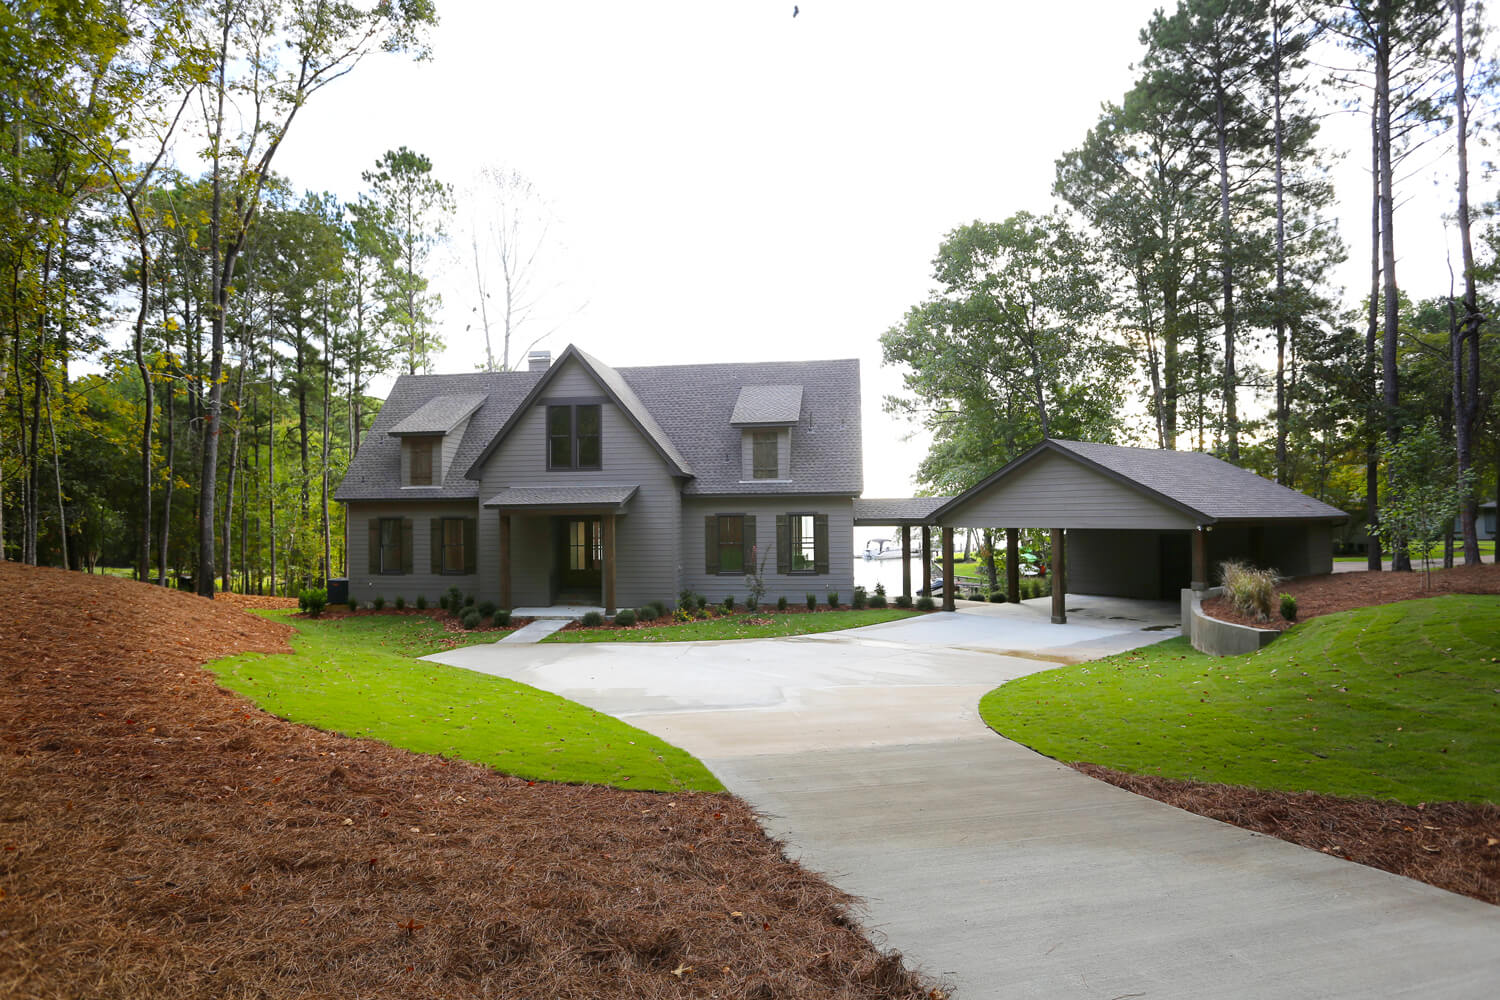 Lake House - Street Side View and Carport - Designed by Foshee Architecture